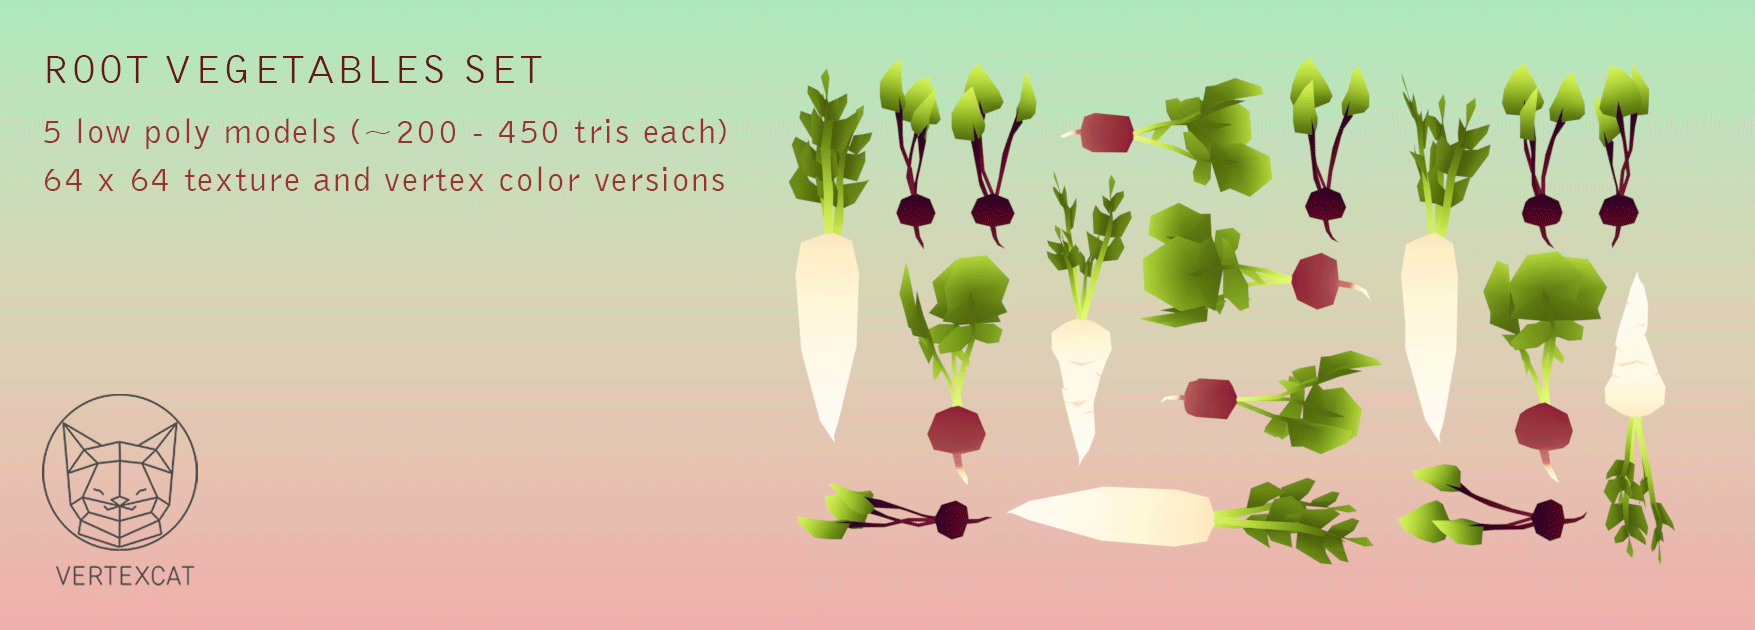 Root vegetables set